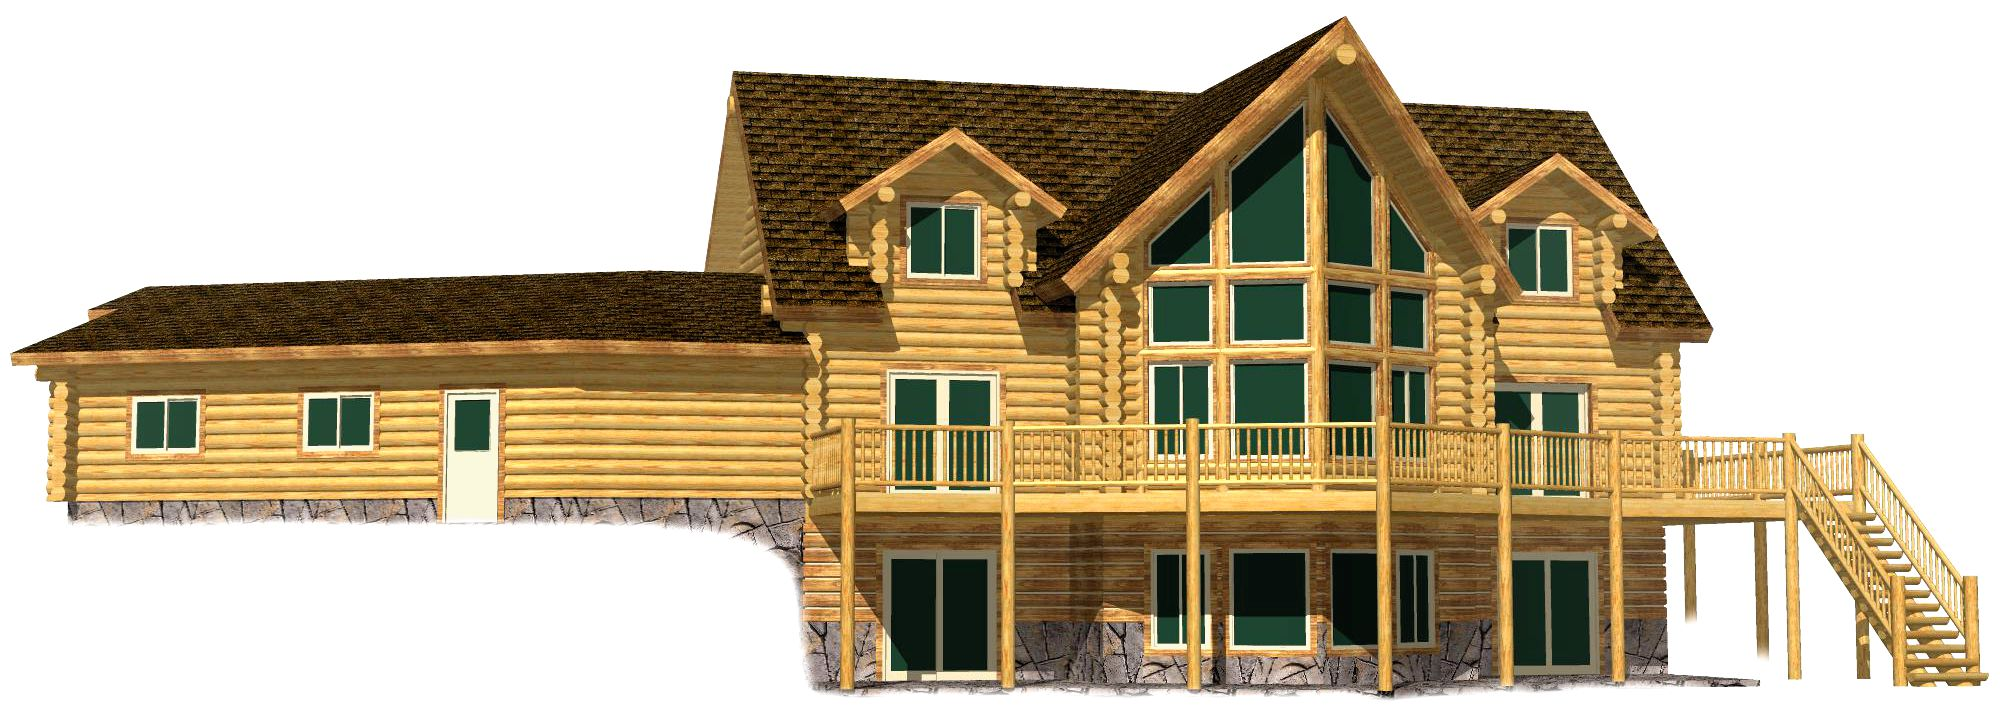 Lazarus Log Home 217 17 Precision Structural Engineering